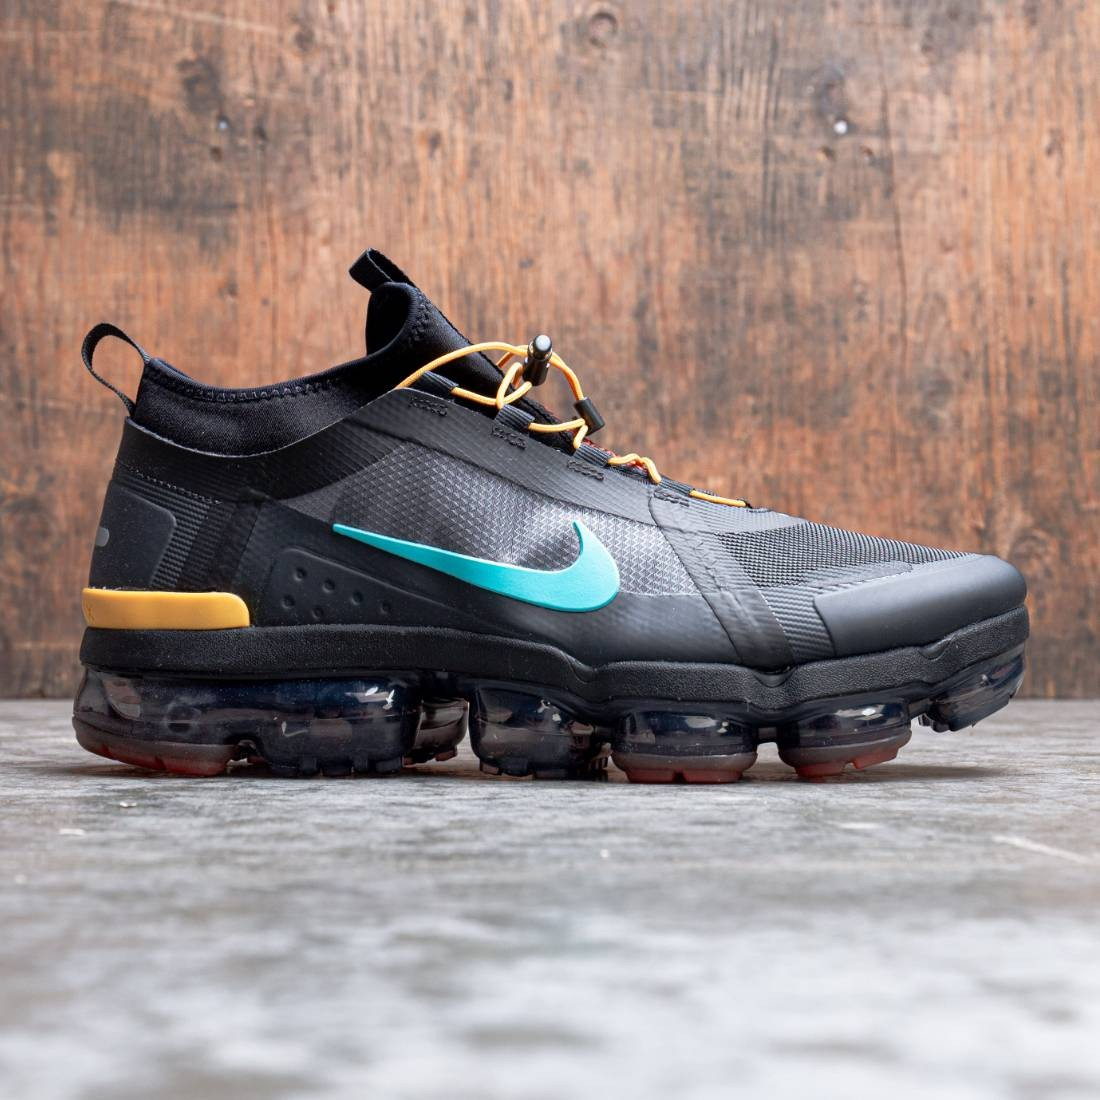 Nike Men Air Vapormax 2019 Utility (off noir teal nebula black cosmic clay)